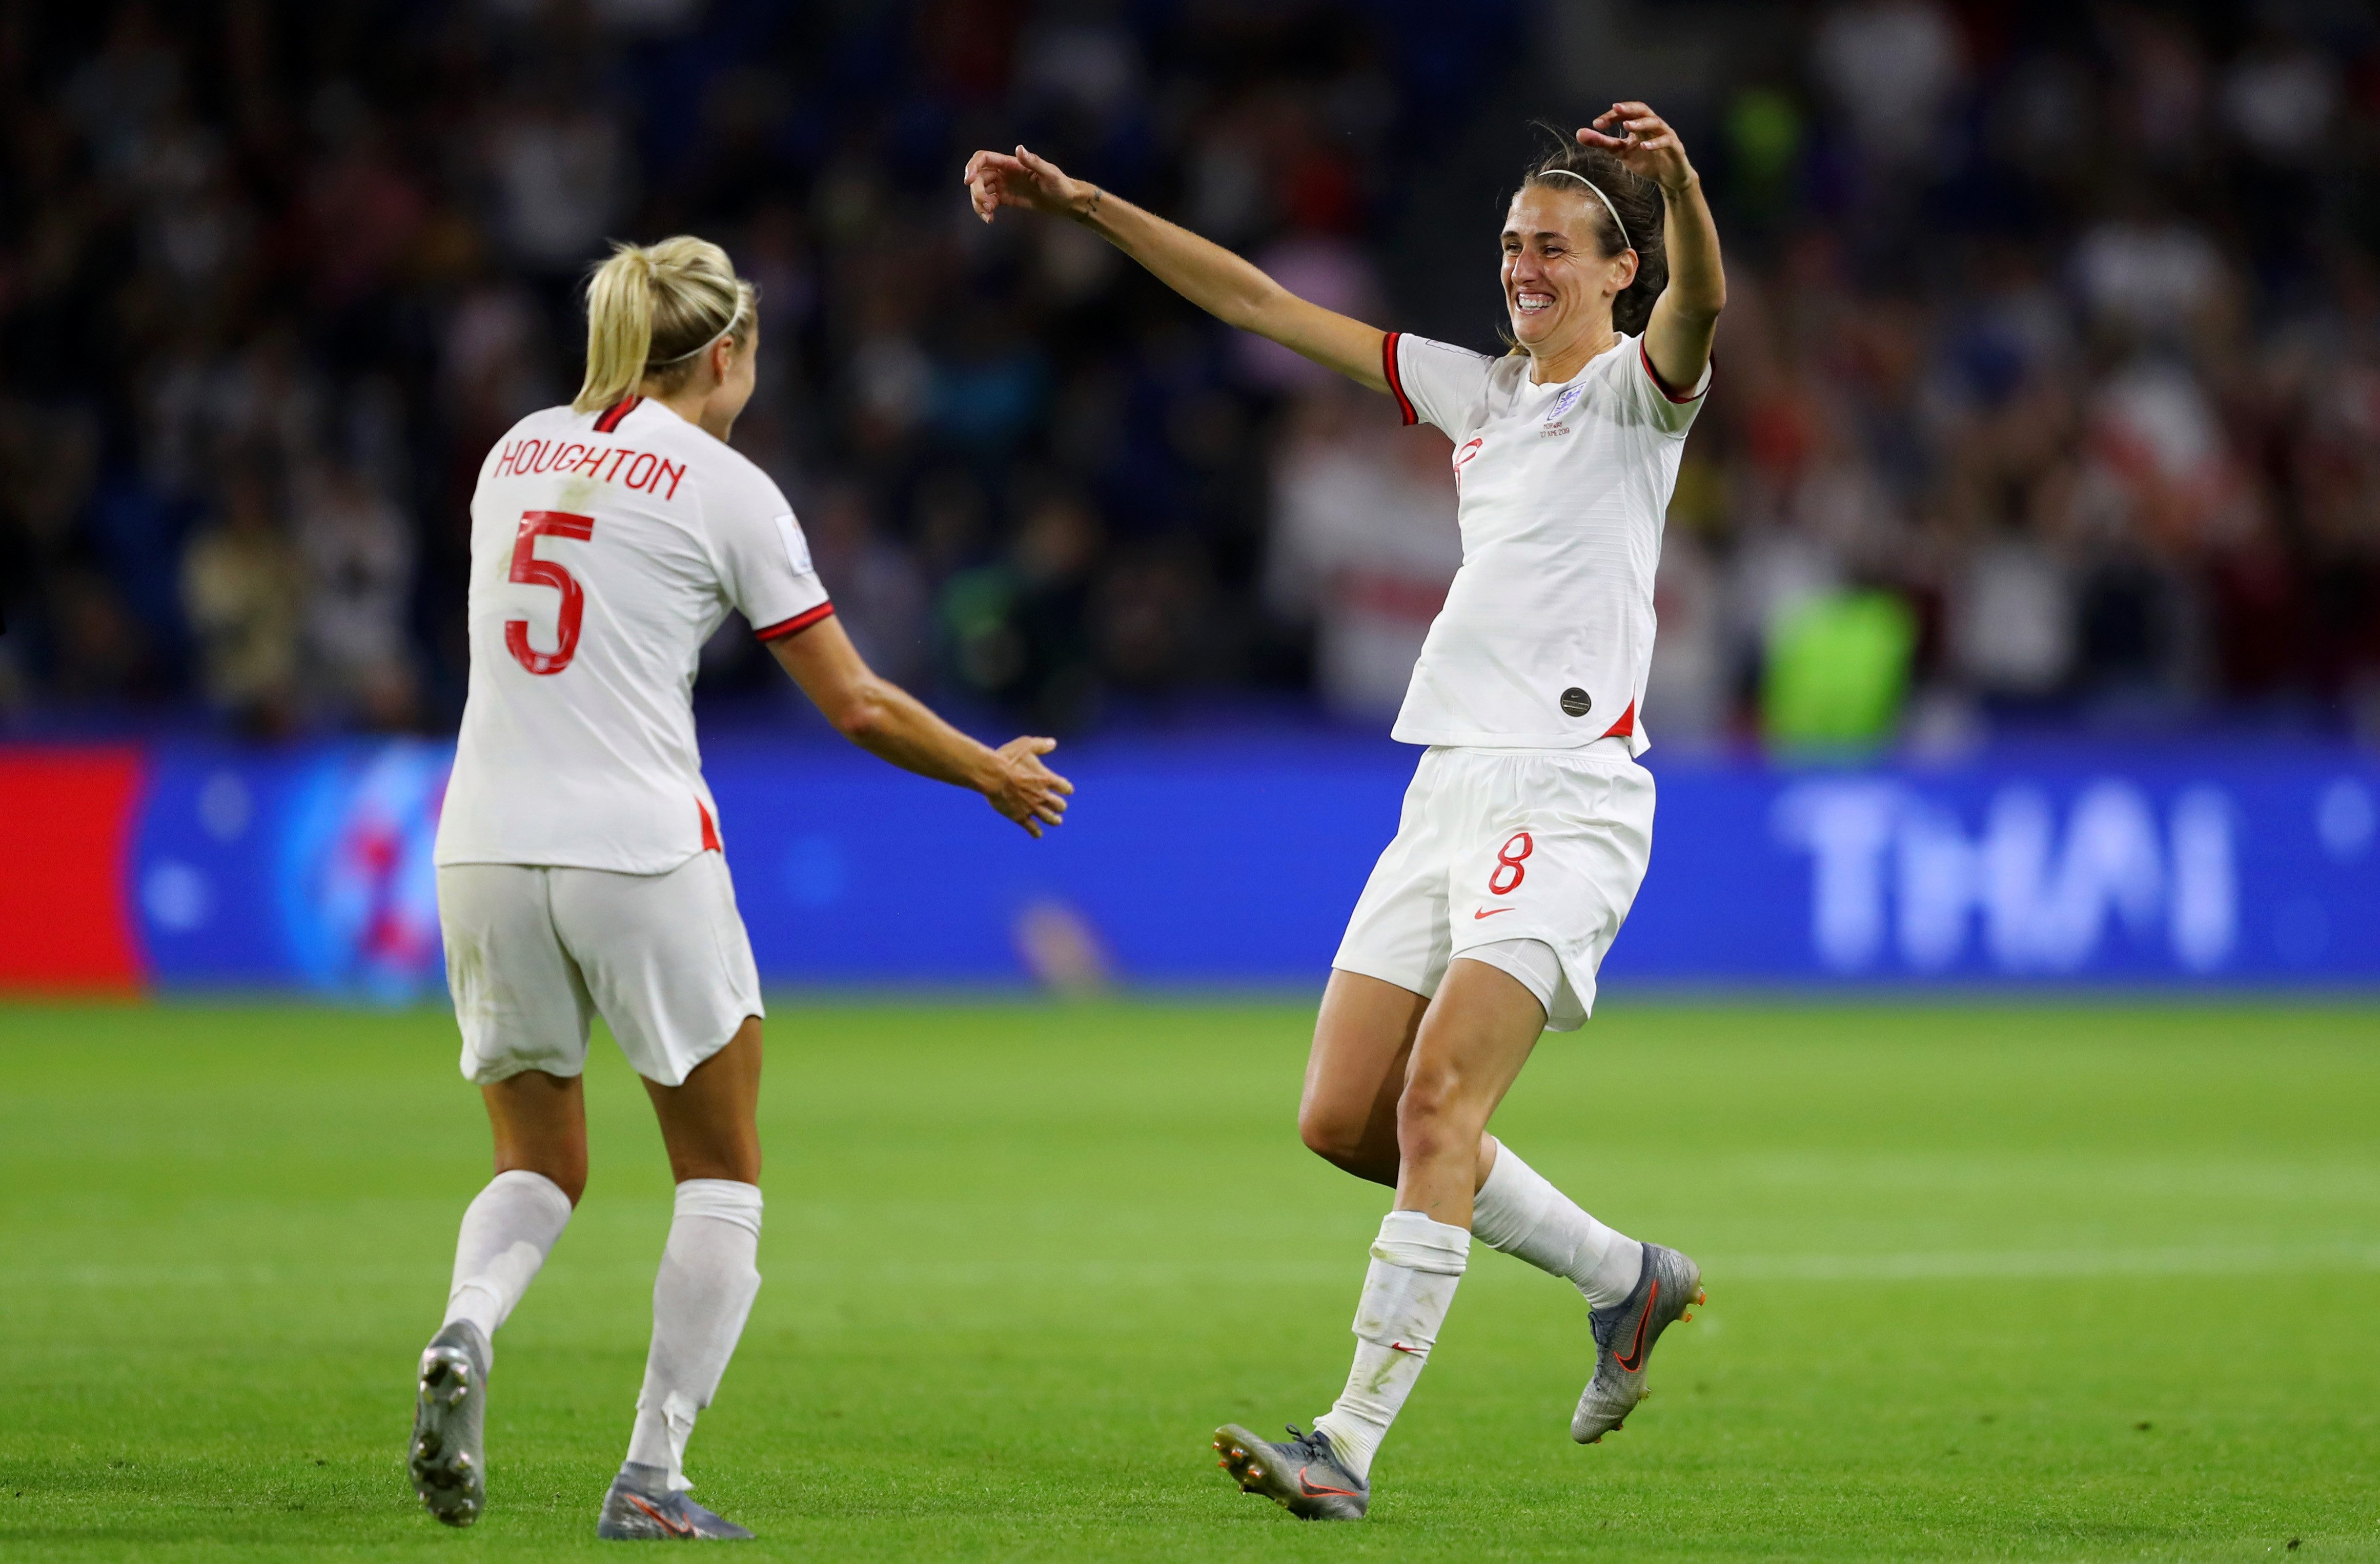 Jill Scott has been a key player for England at the Women's World Cup